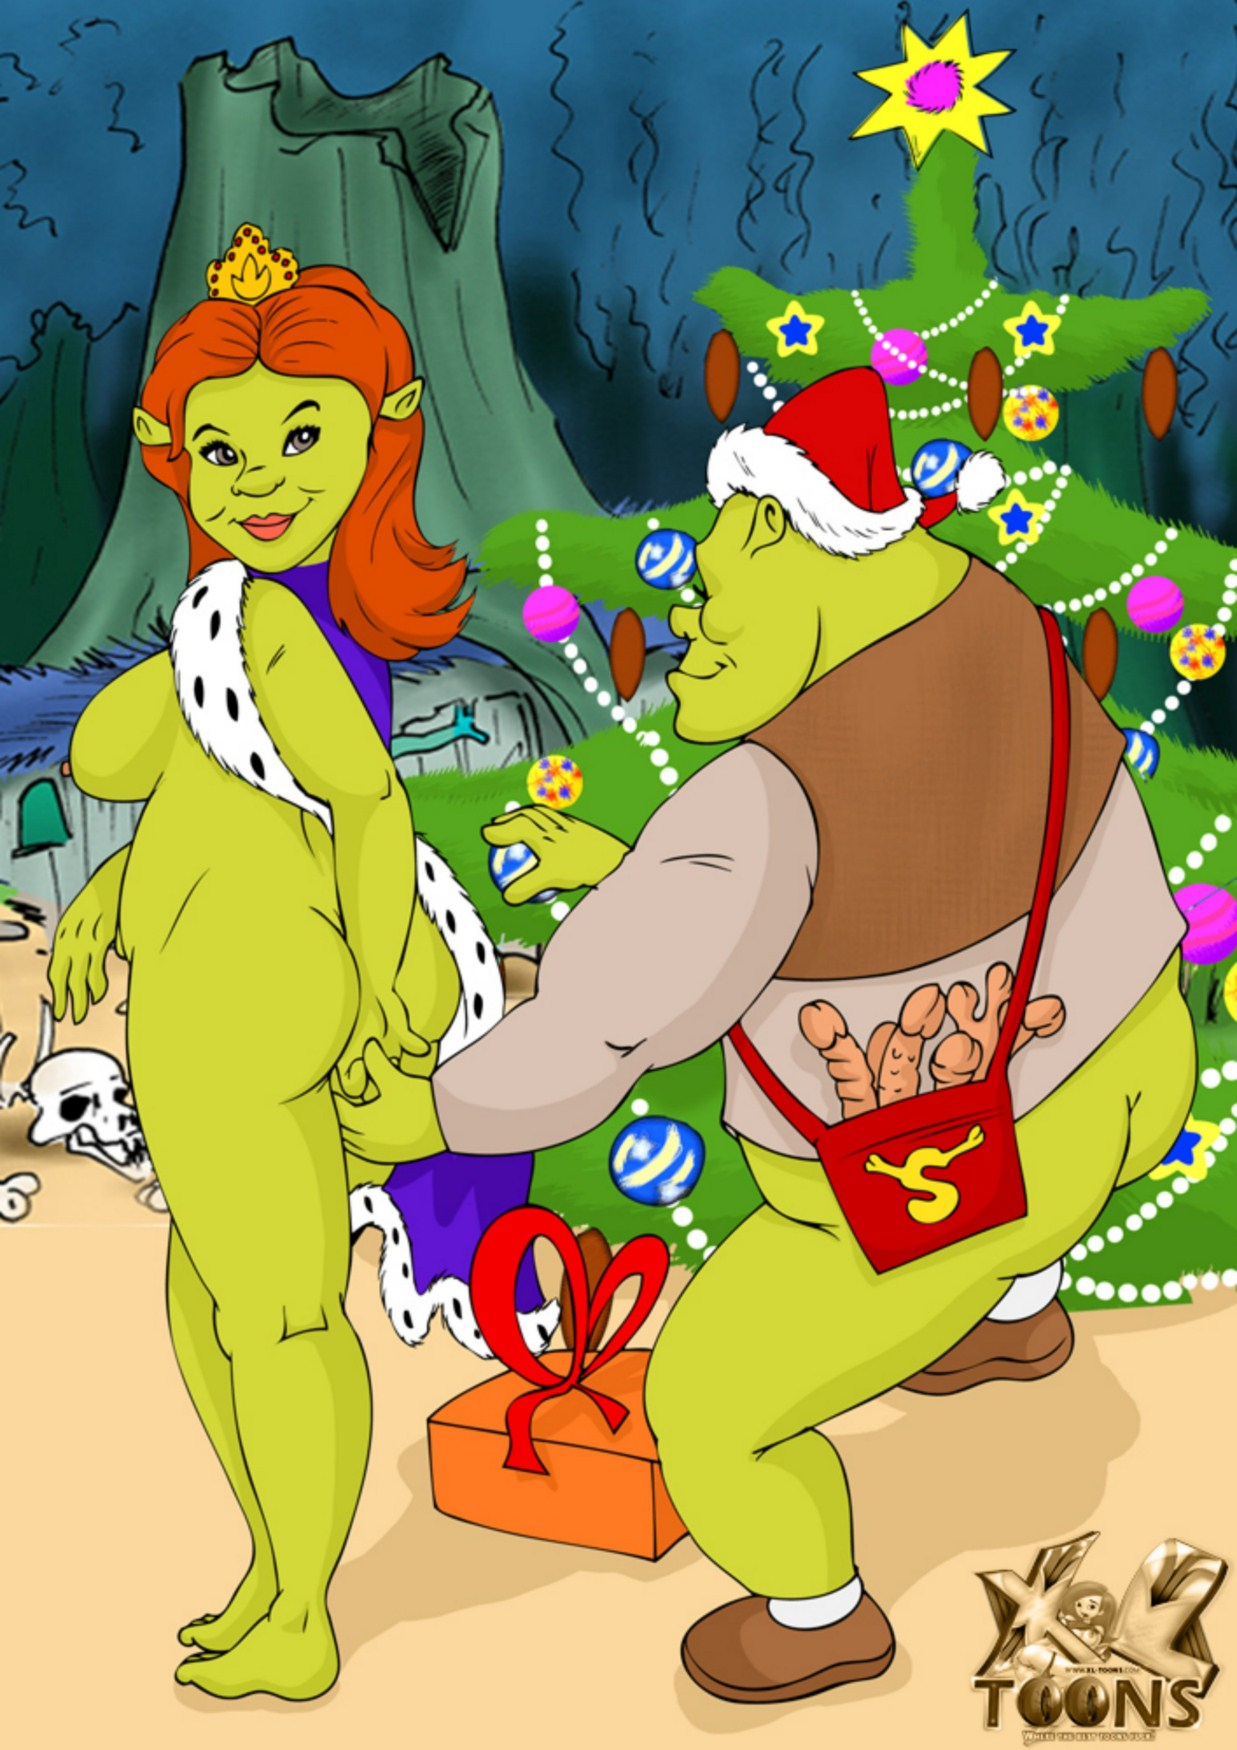 Porno de shrek y fiona xxx exposed photo